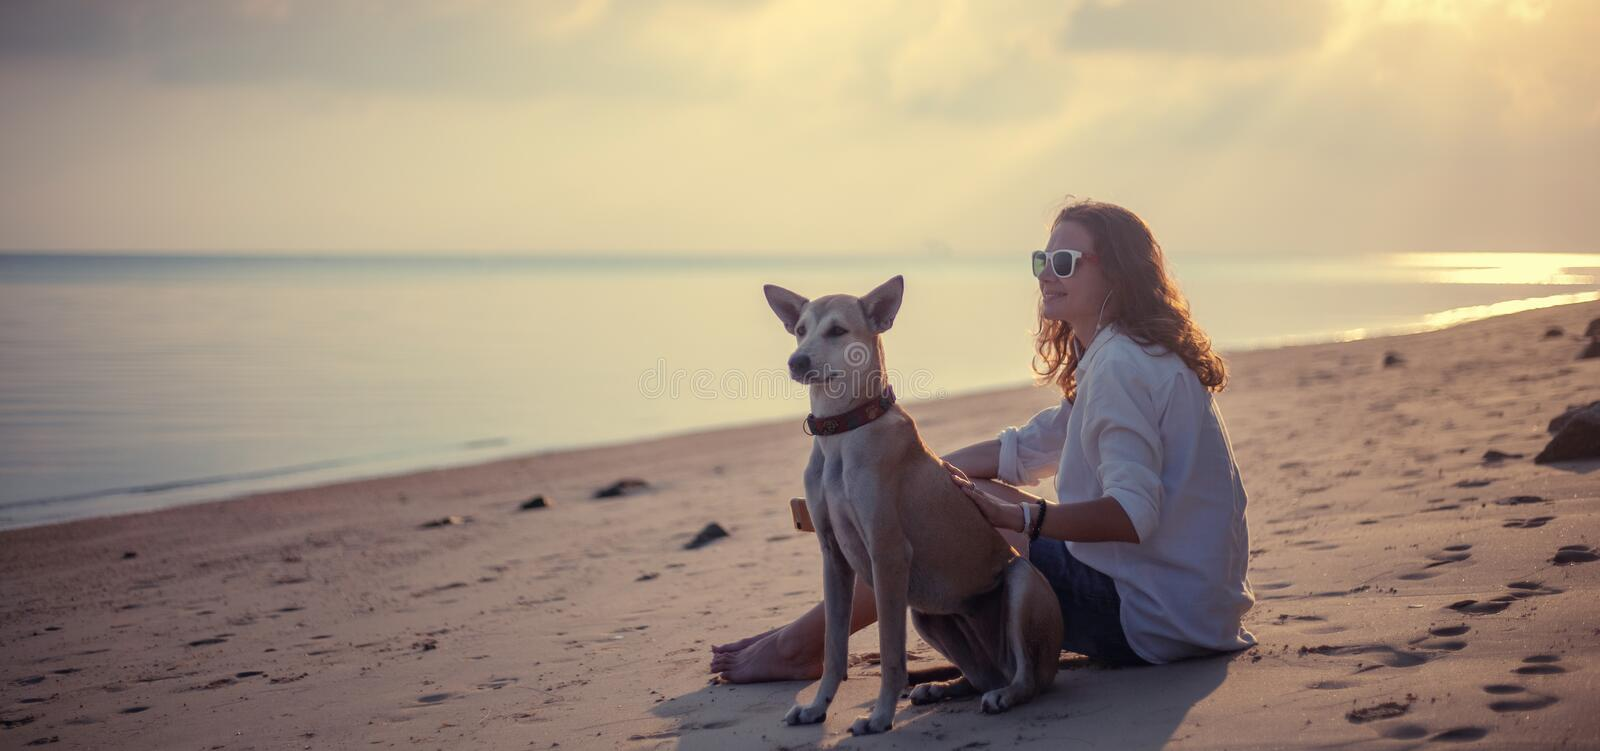 Beautiful young girl woman sitting on the beach in the sand with her dog and watching the beautiful sunset royalty free stock images